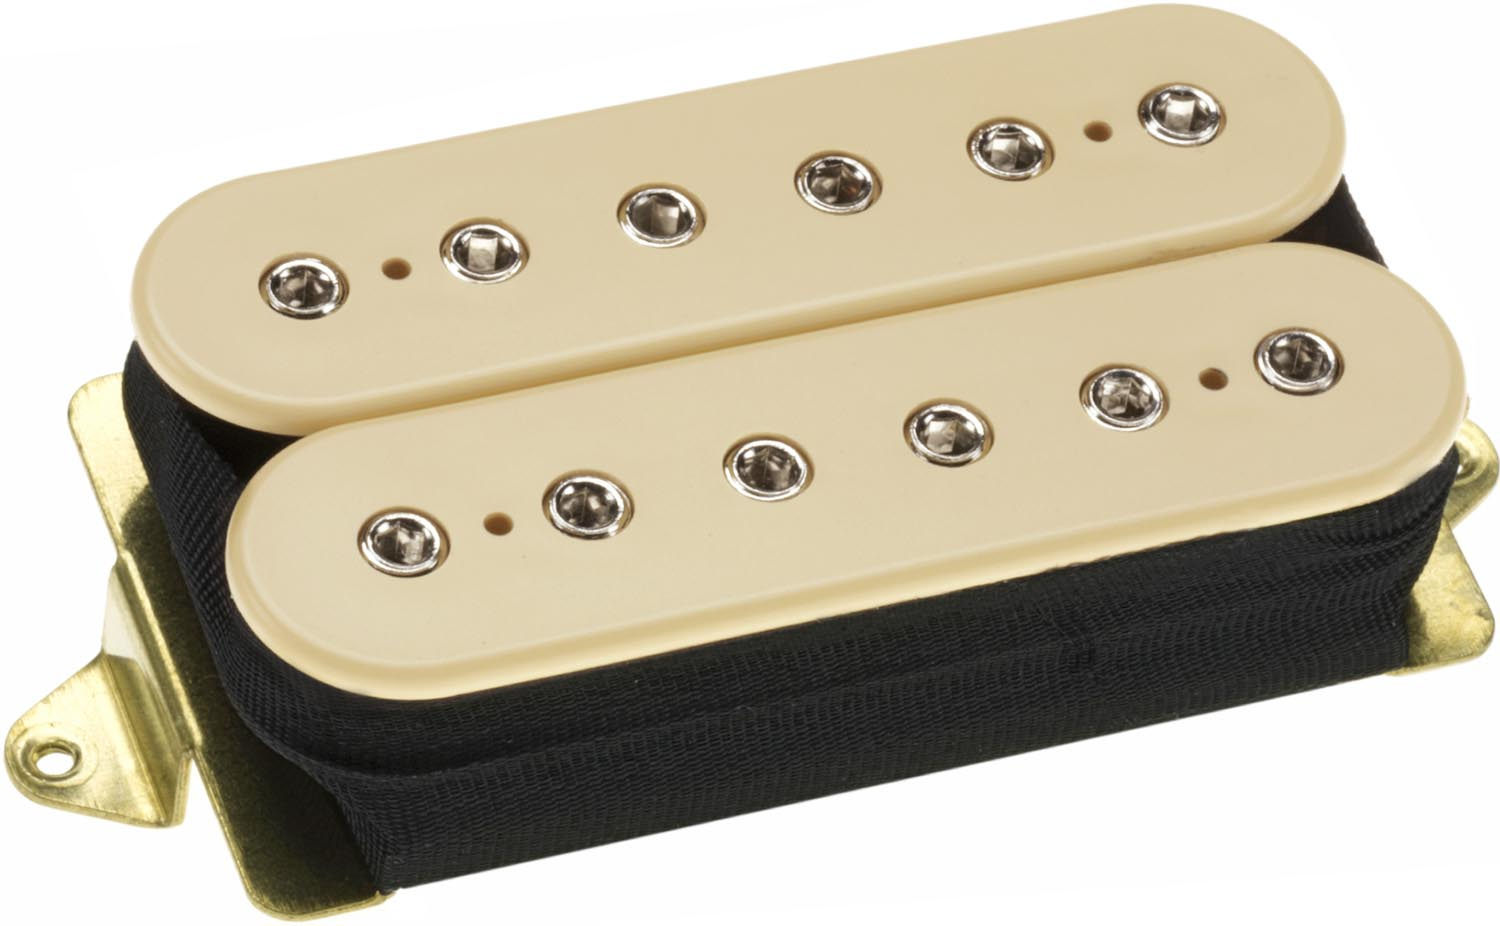 Dimarzio Dp100f Super Distortion Ceramic Humbucker F Spaced Bridge Dual Sound Wiring On Diagram For Humbuckers Quick View